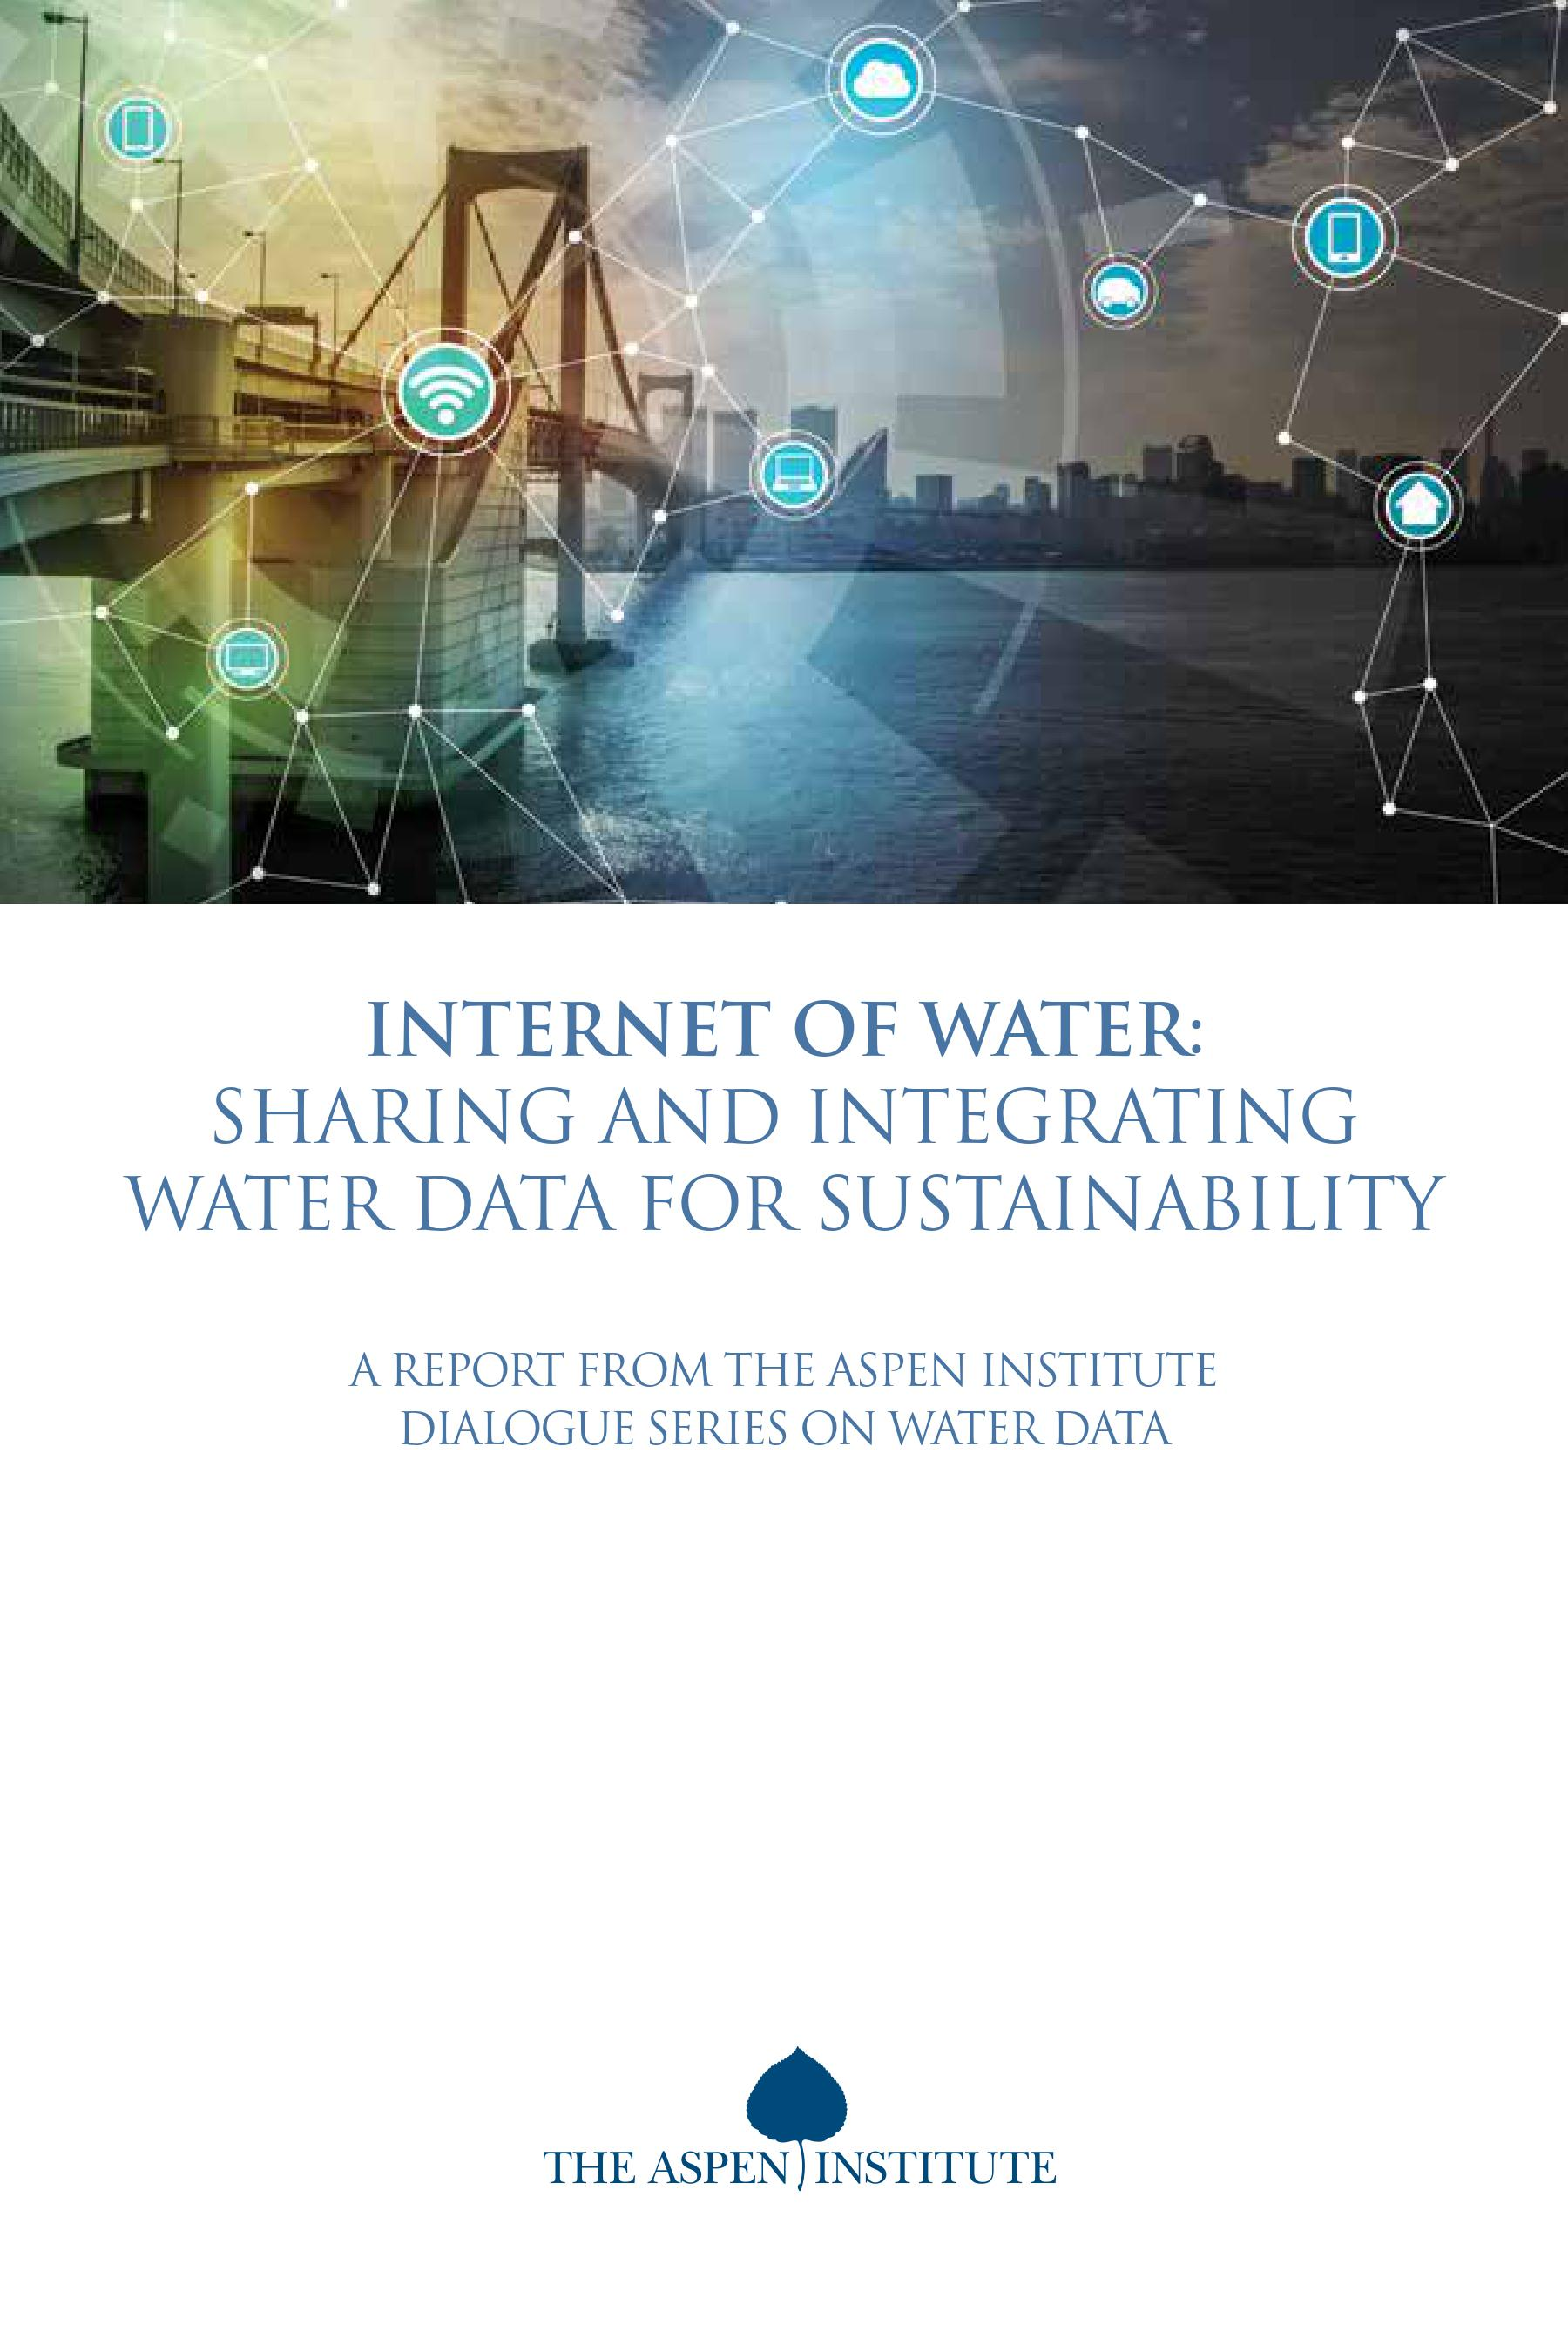 Internet of Water: A Report on Sharing Water Data